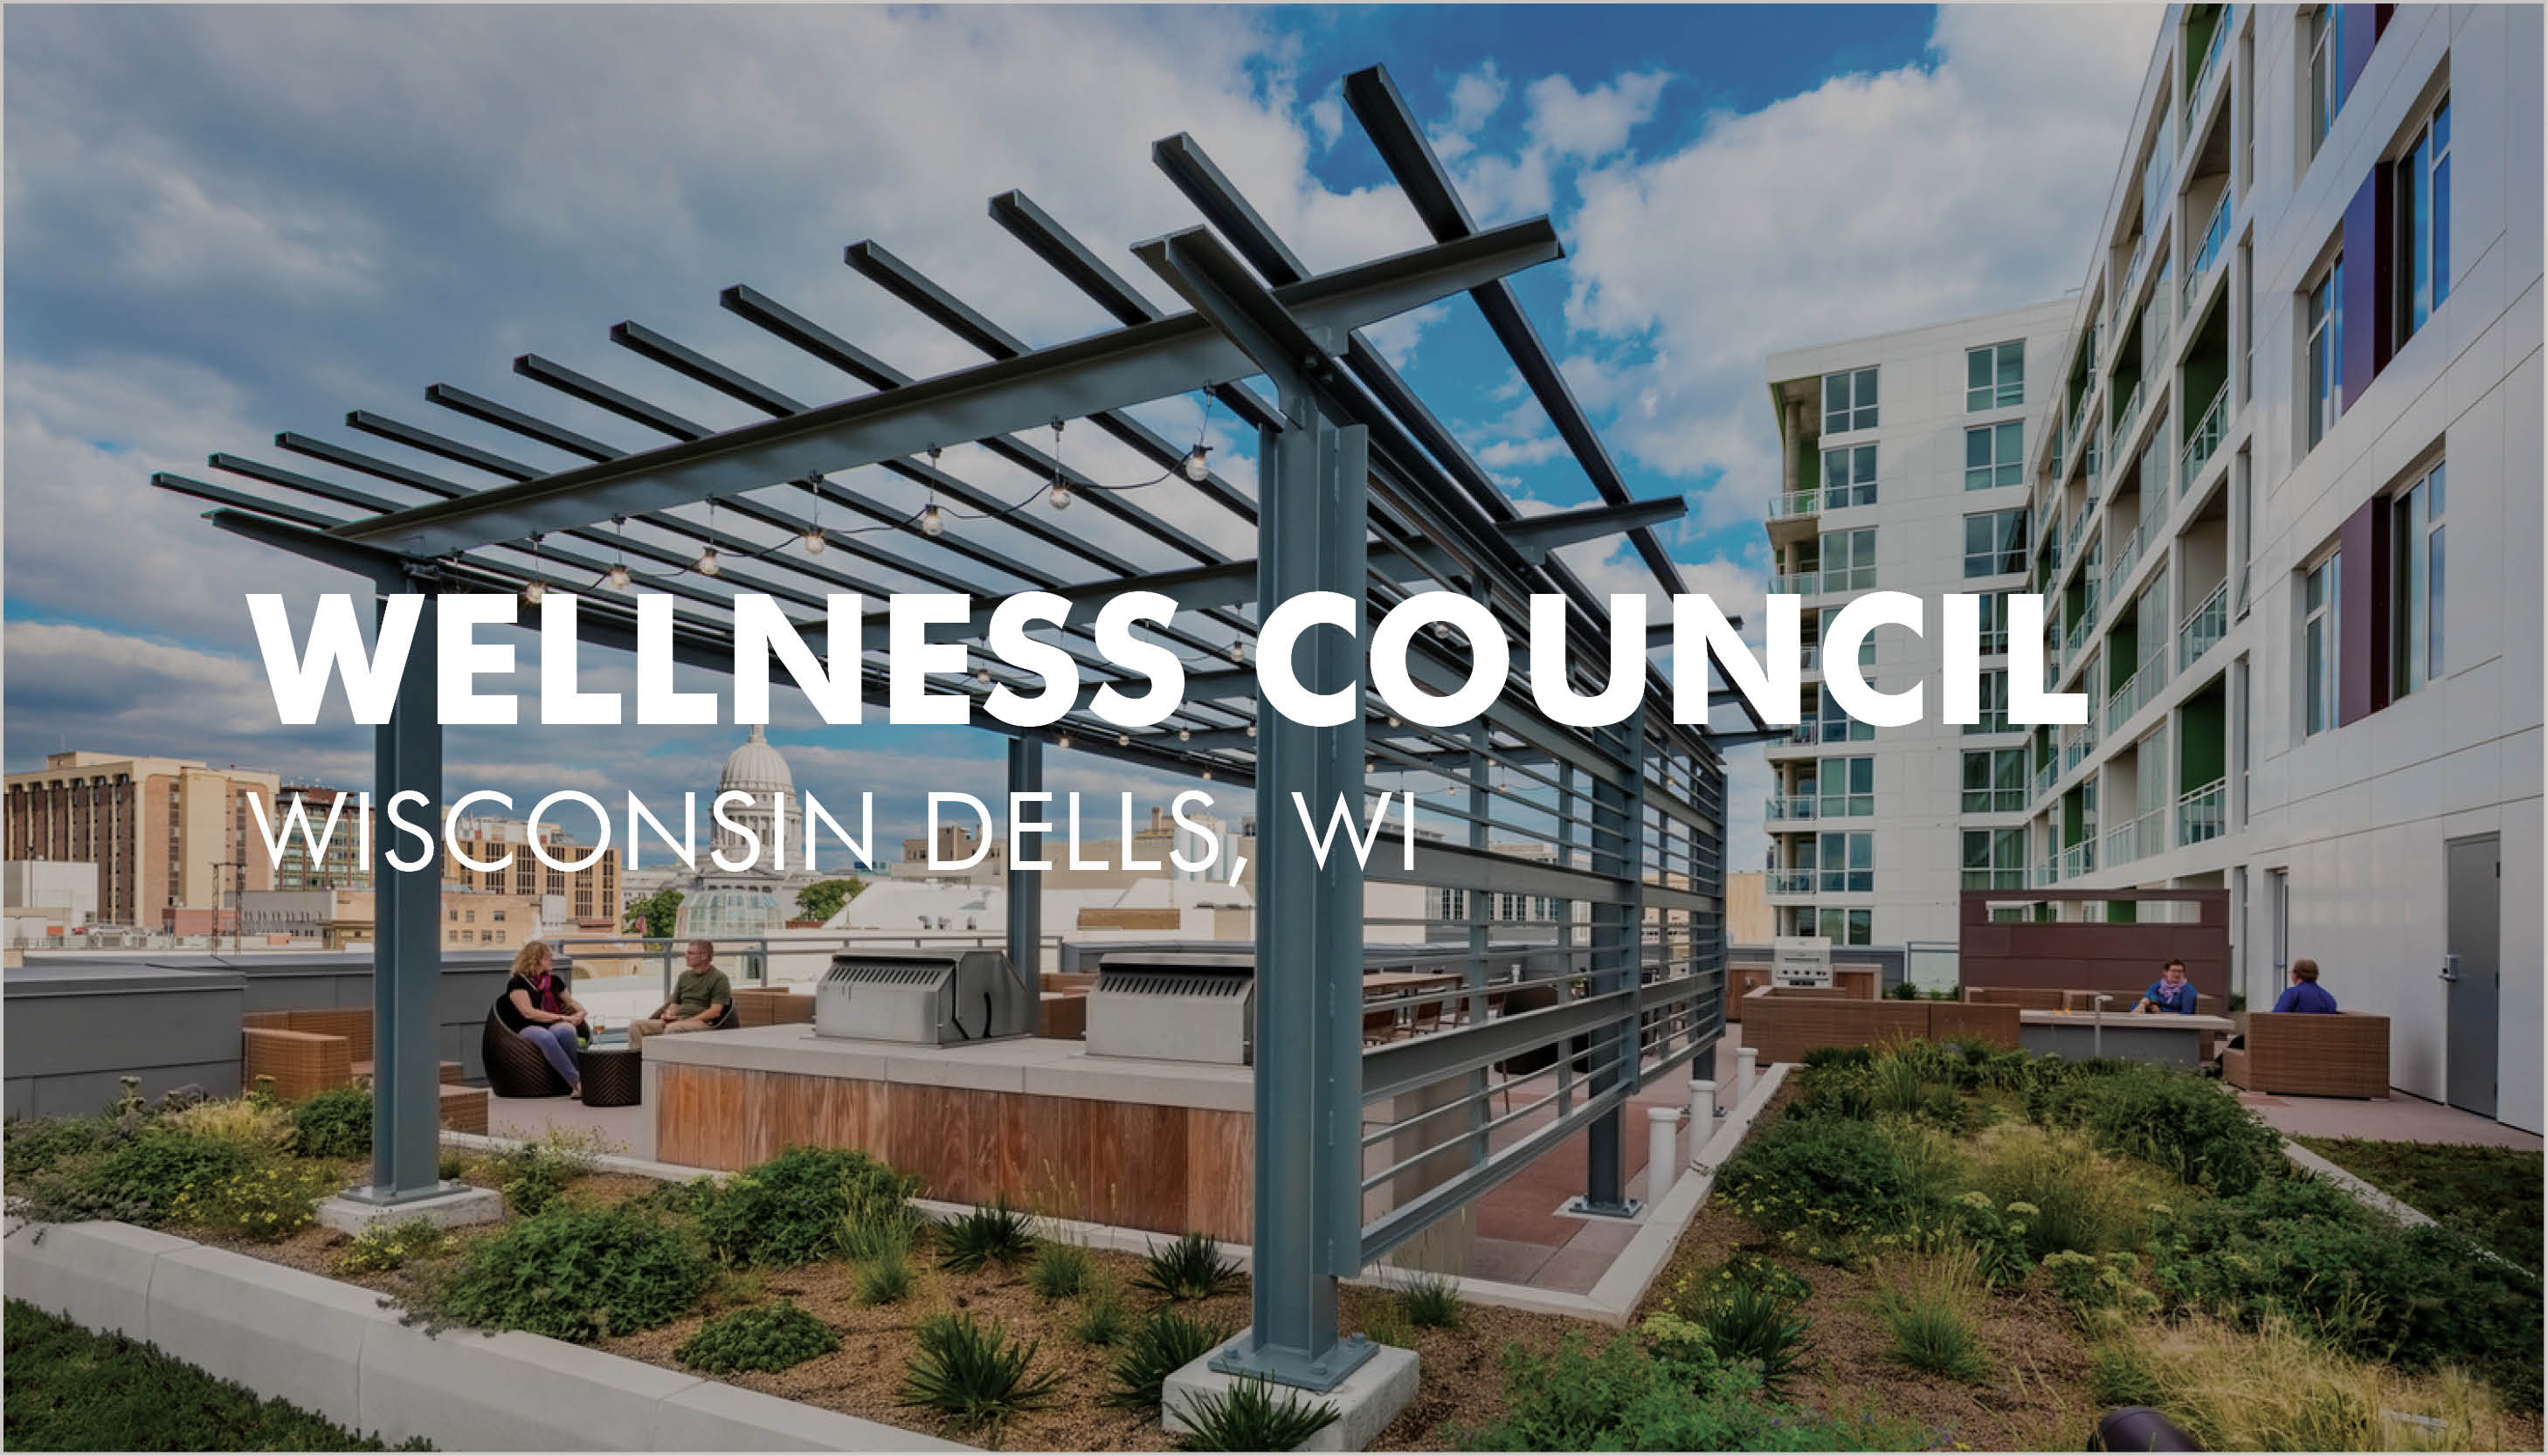 Wellness Council One Day Summit 2019 Image